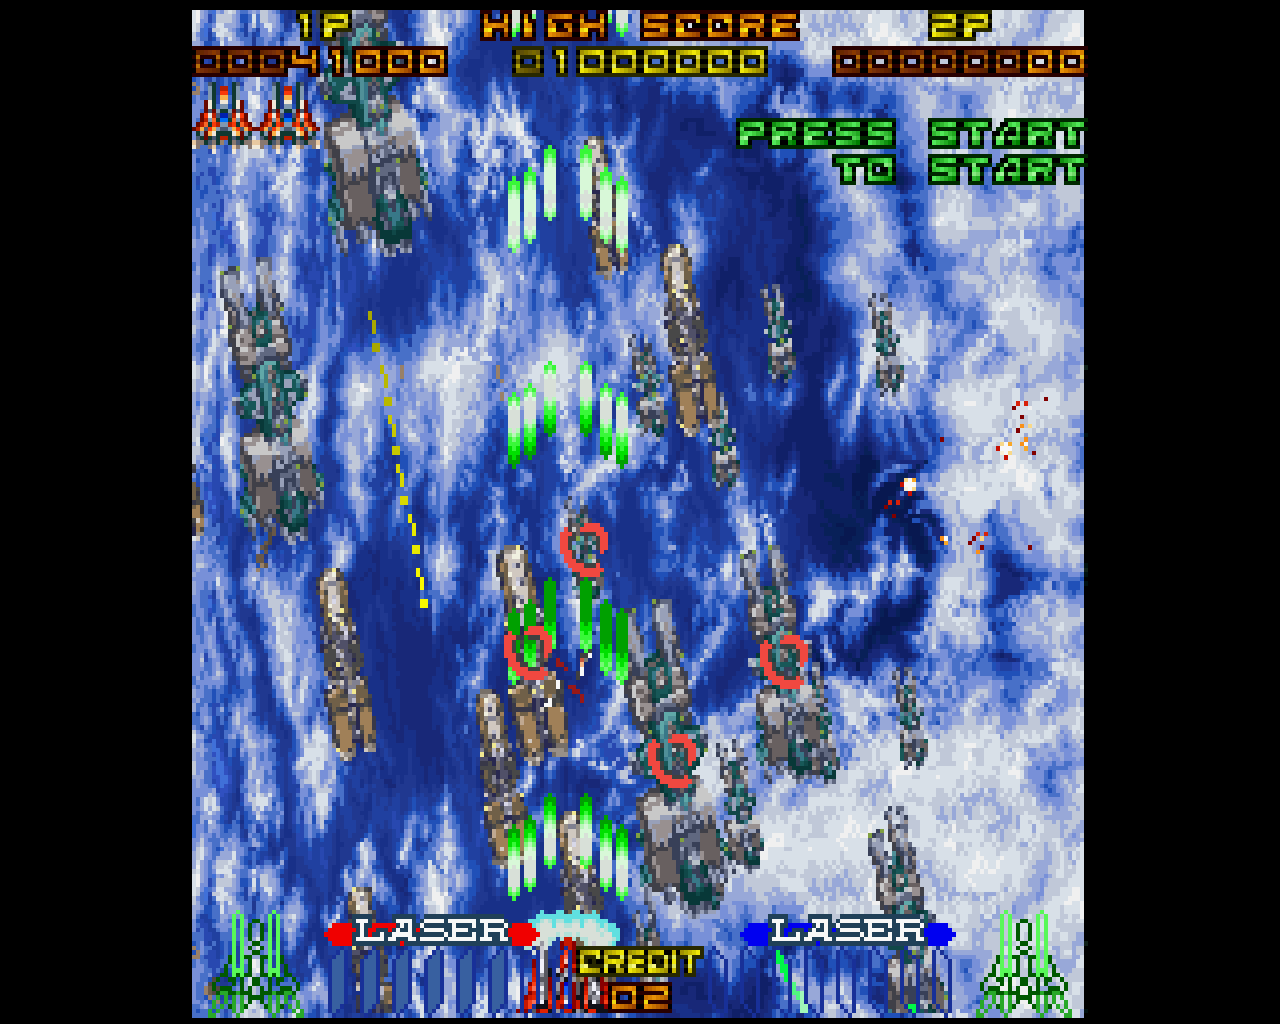 Figure 1 - Galactic Attack for the Sega Saturn running on ODROID-XU3/XU4